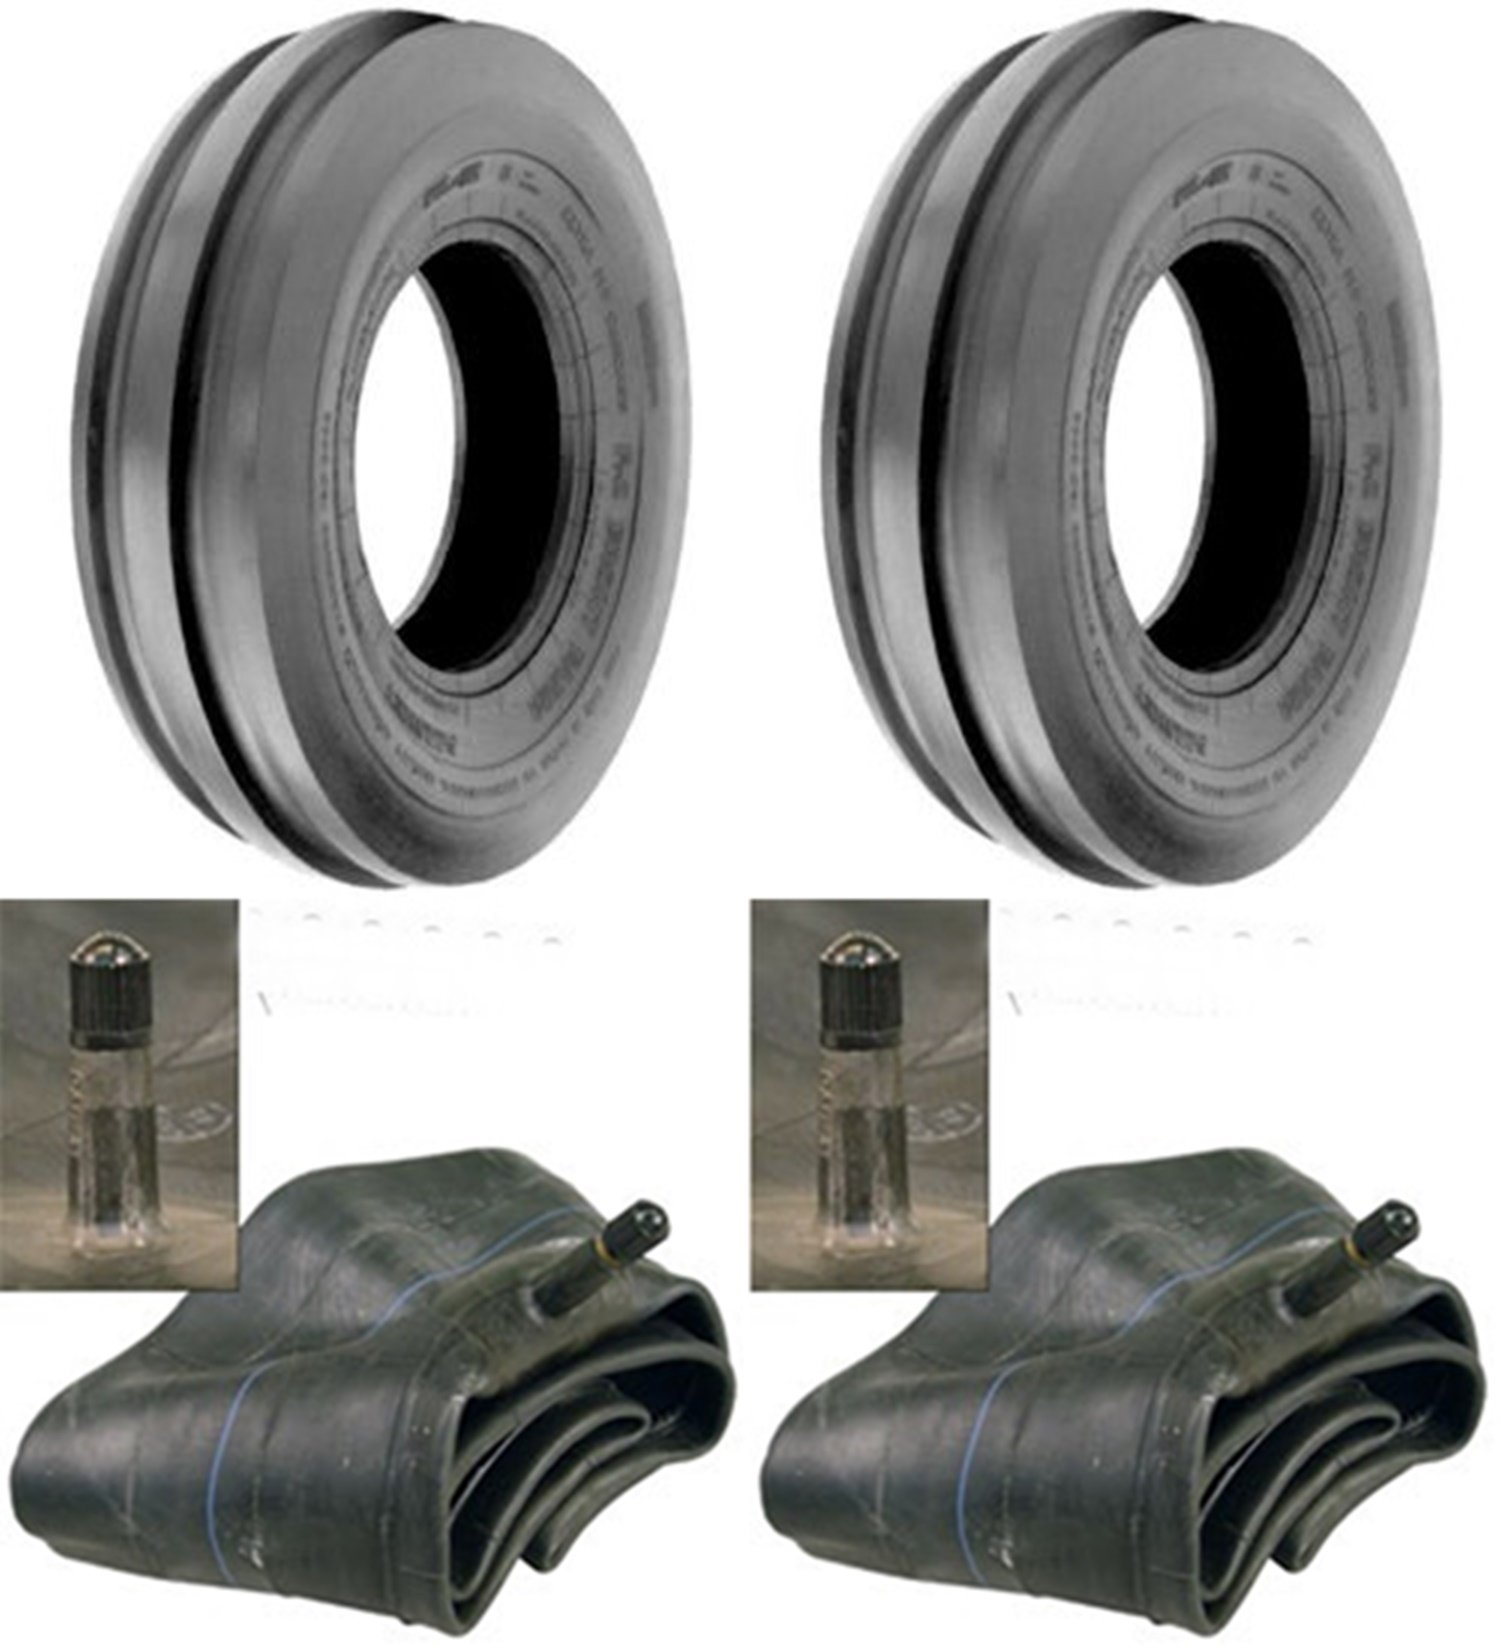 LOT OF TWO (2) 4.00-19 4.00x19 Tri Rib (3 Rib) Tires with Tubes by Tire Geek (Image #1)